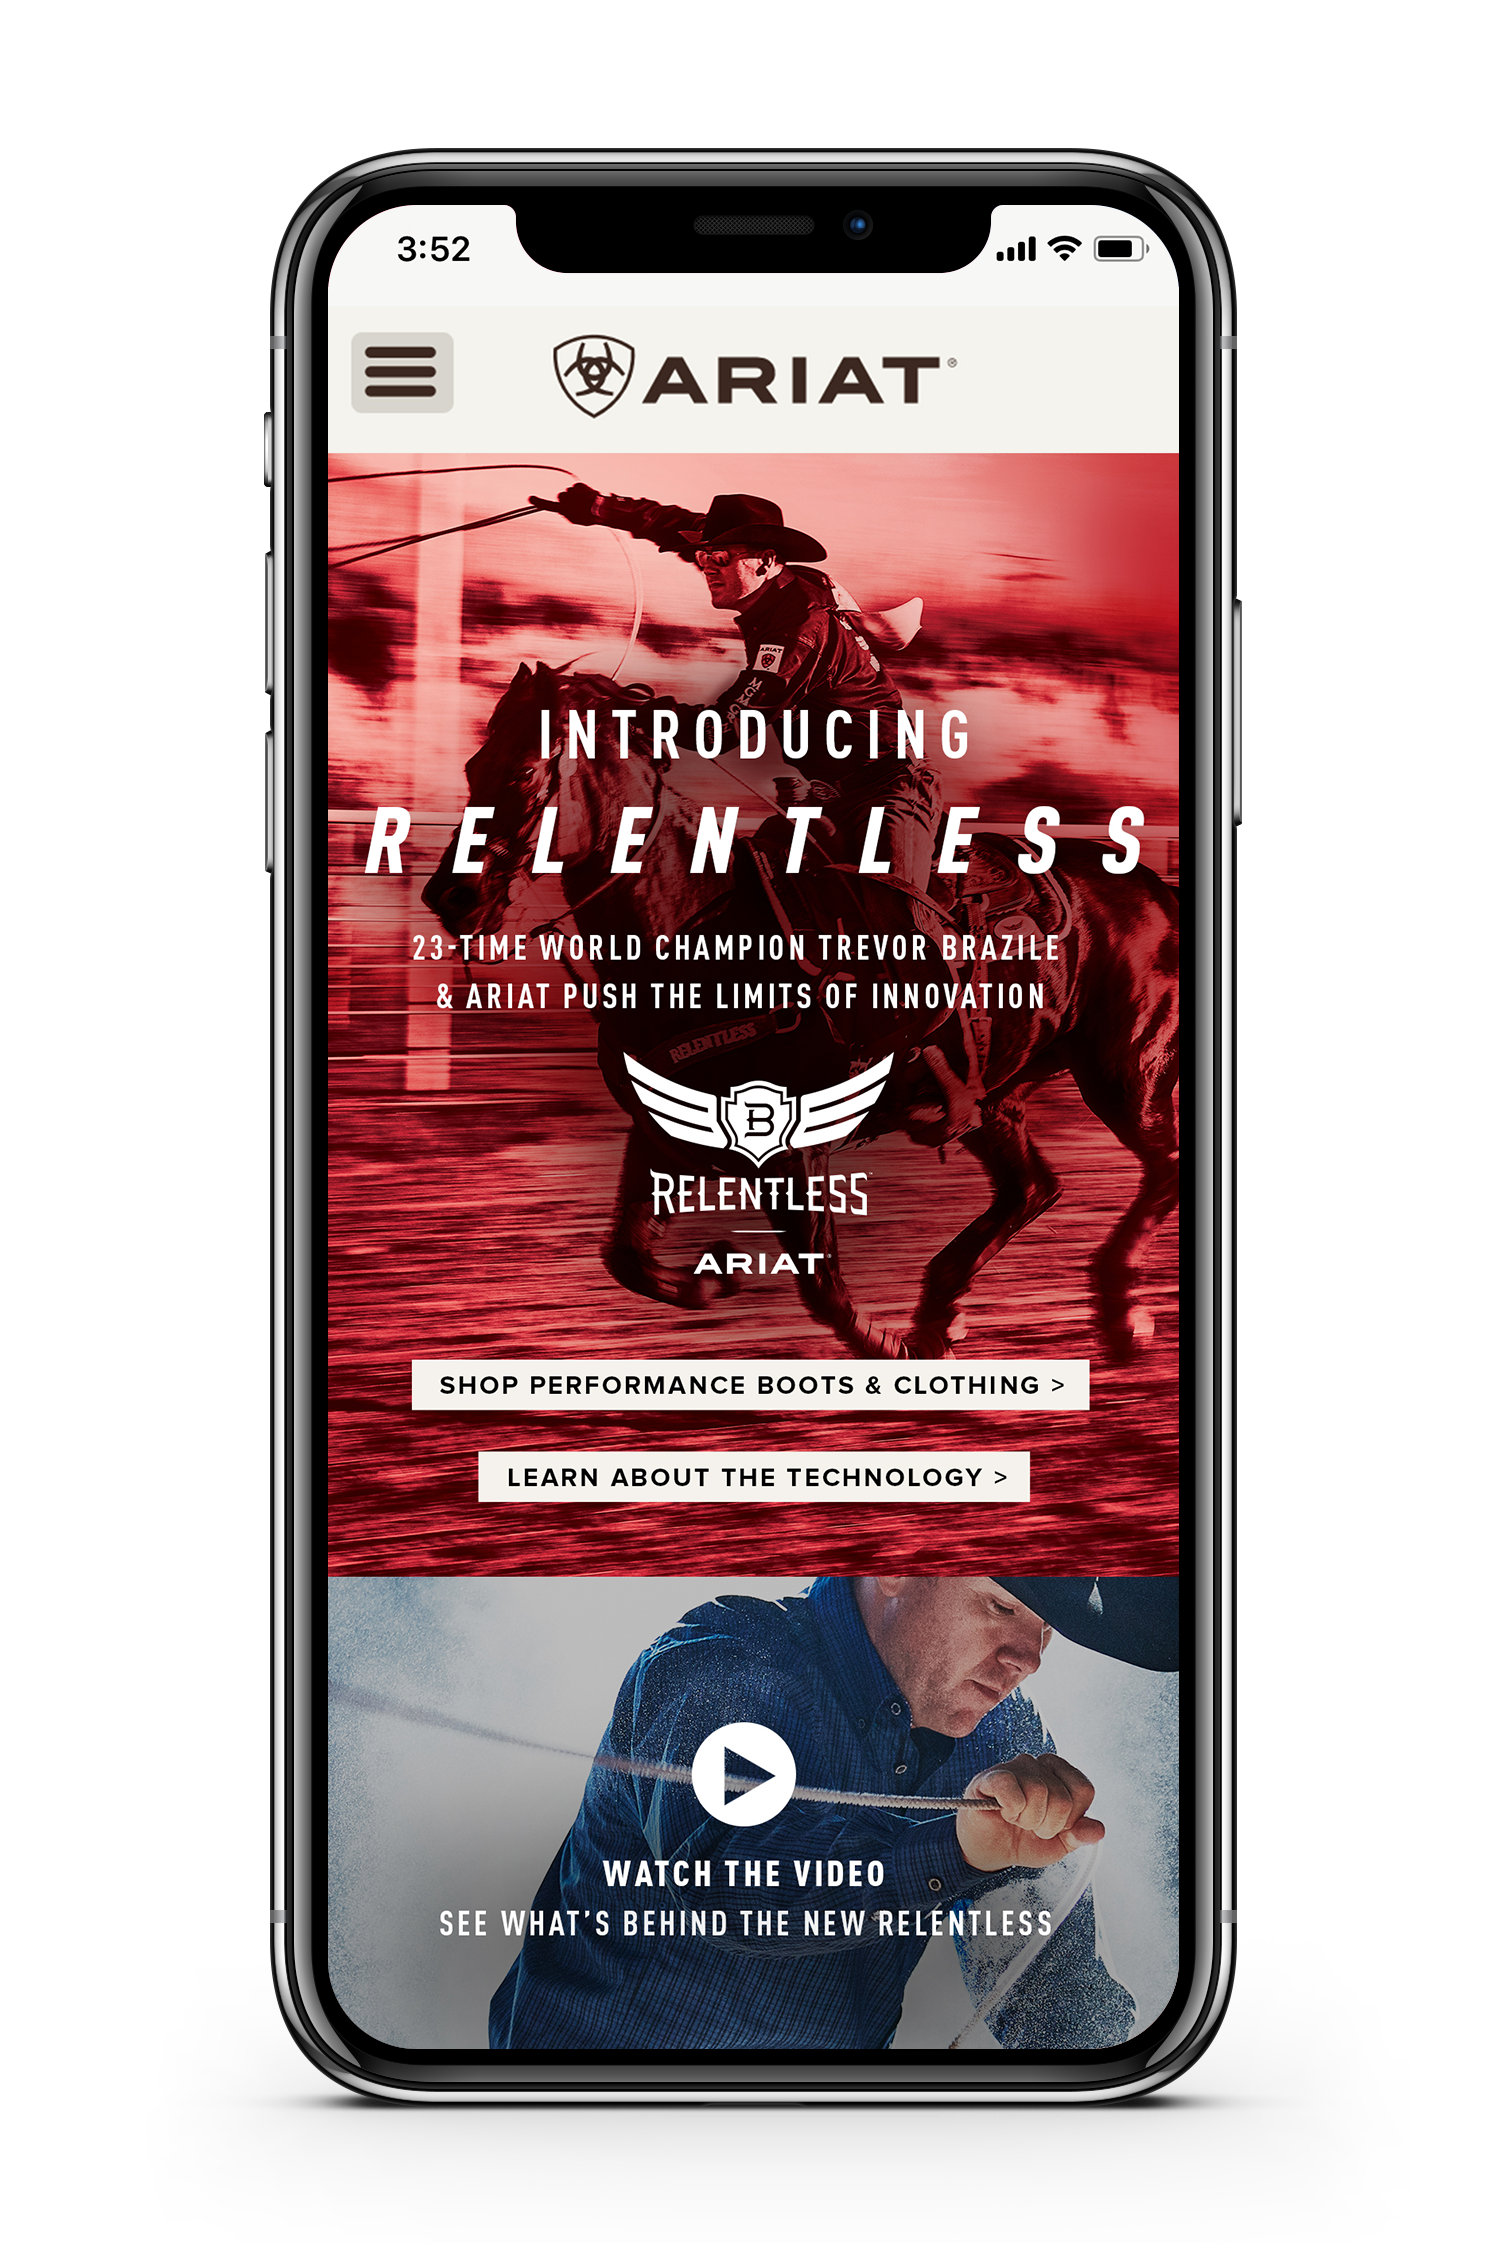 Ariat landing page for relentless displayed on smartphone